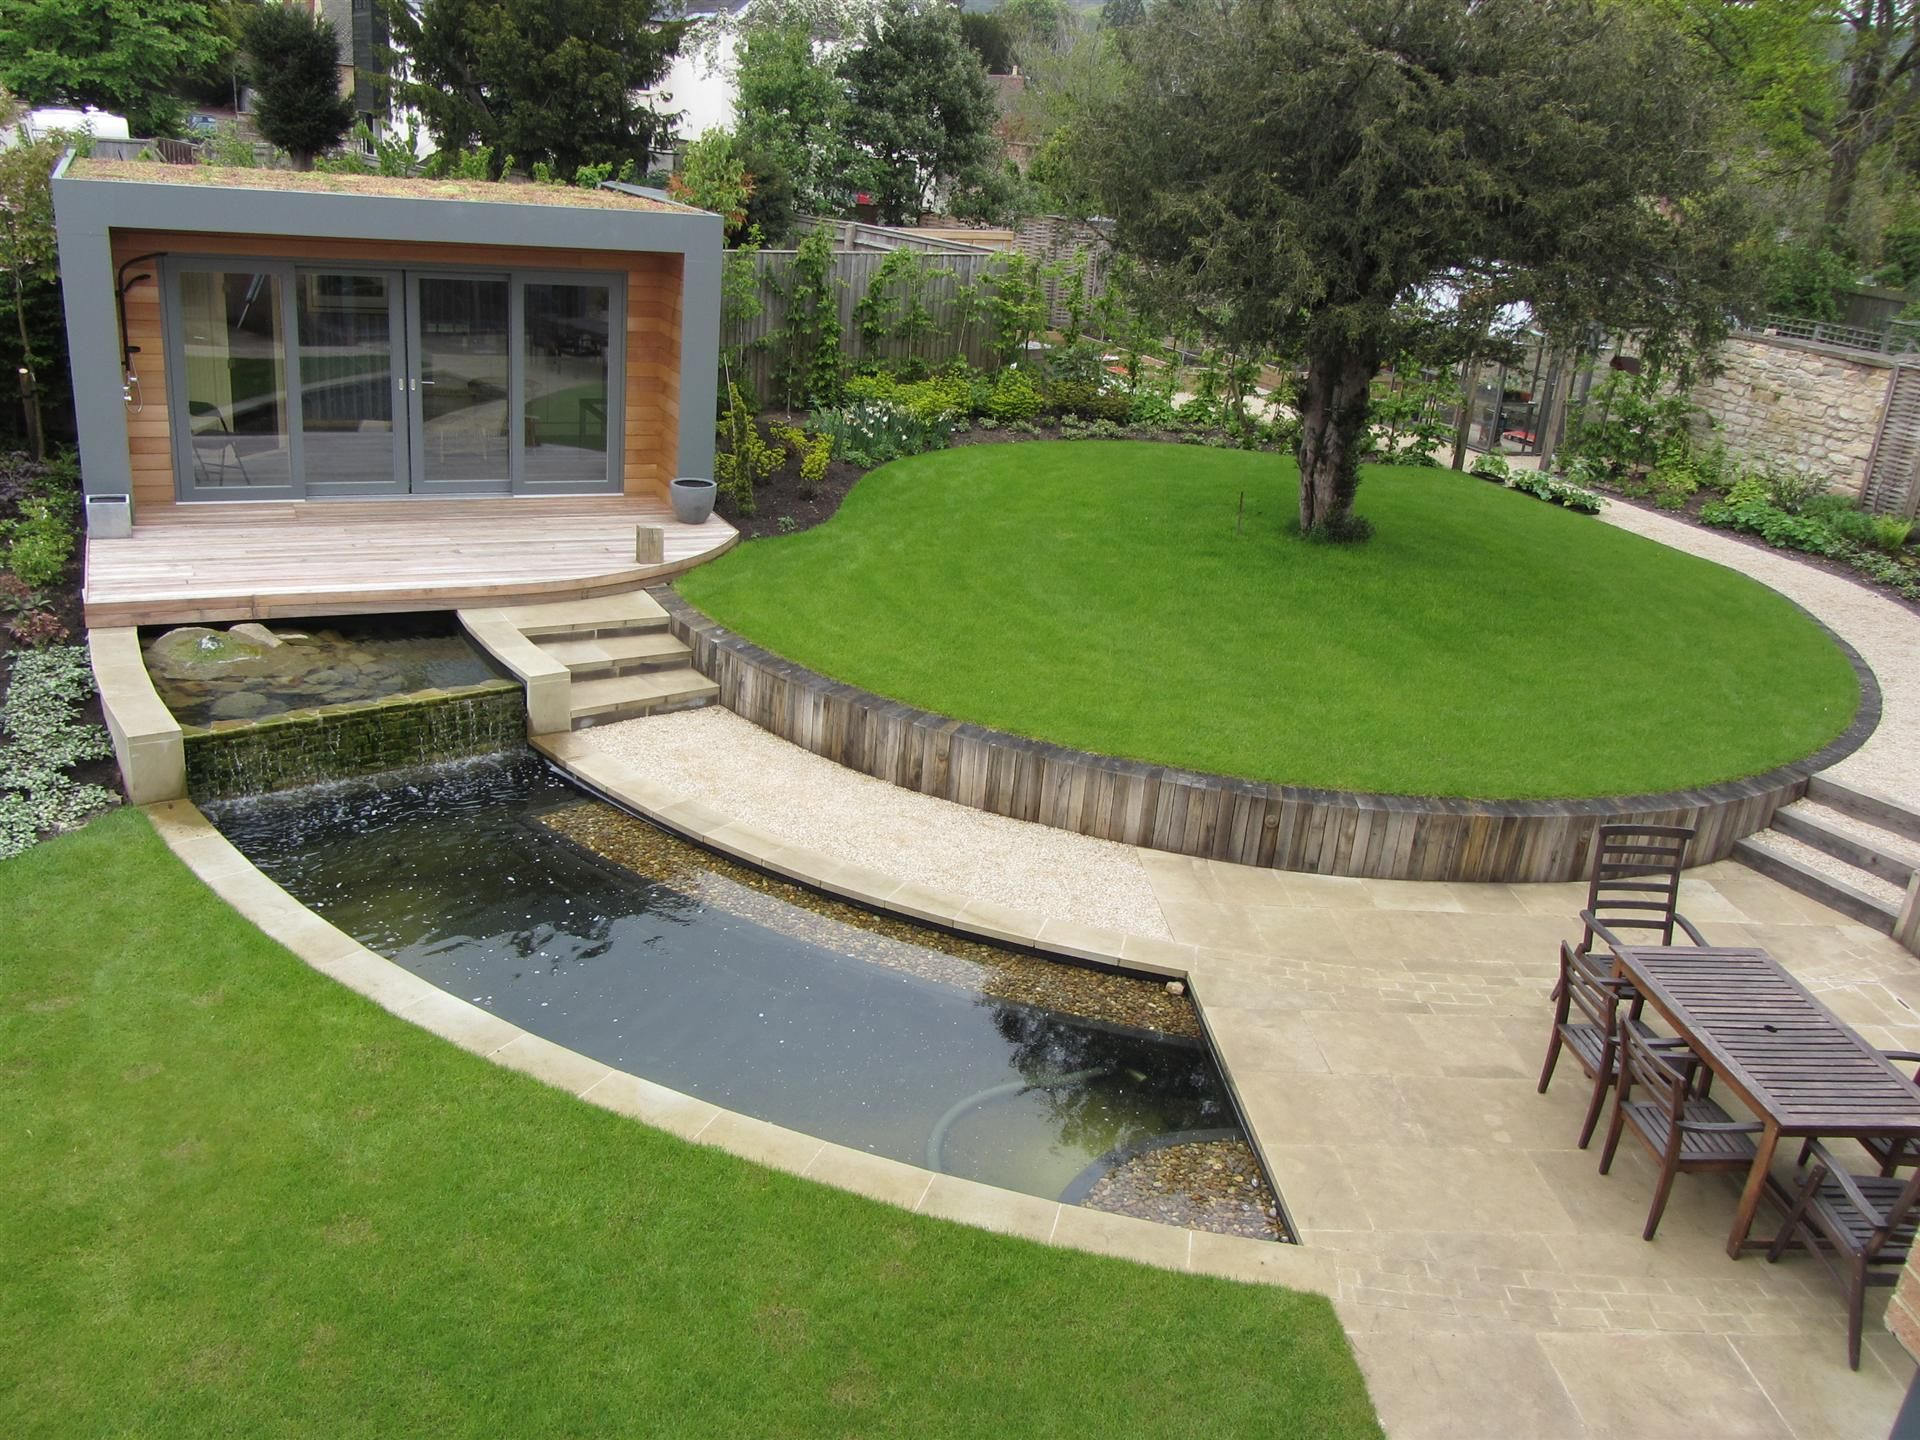 Stunning Modern Garden Design Exquisite Pond Also Flat Shed House Roof Idea  Plus Circular Lawn And